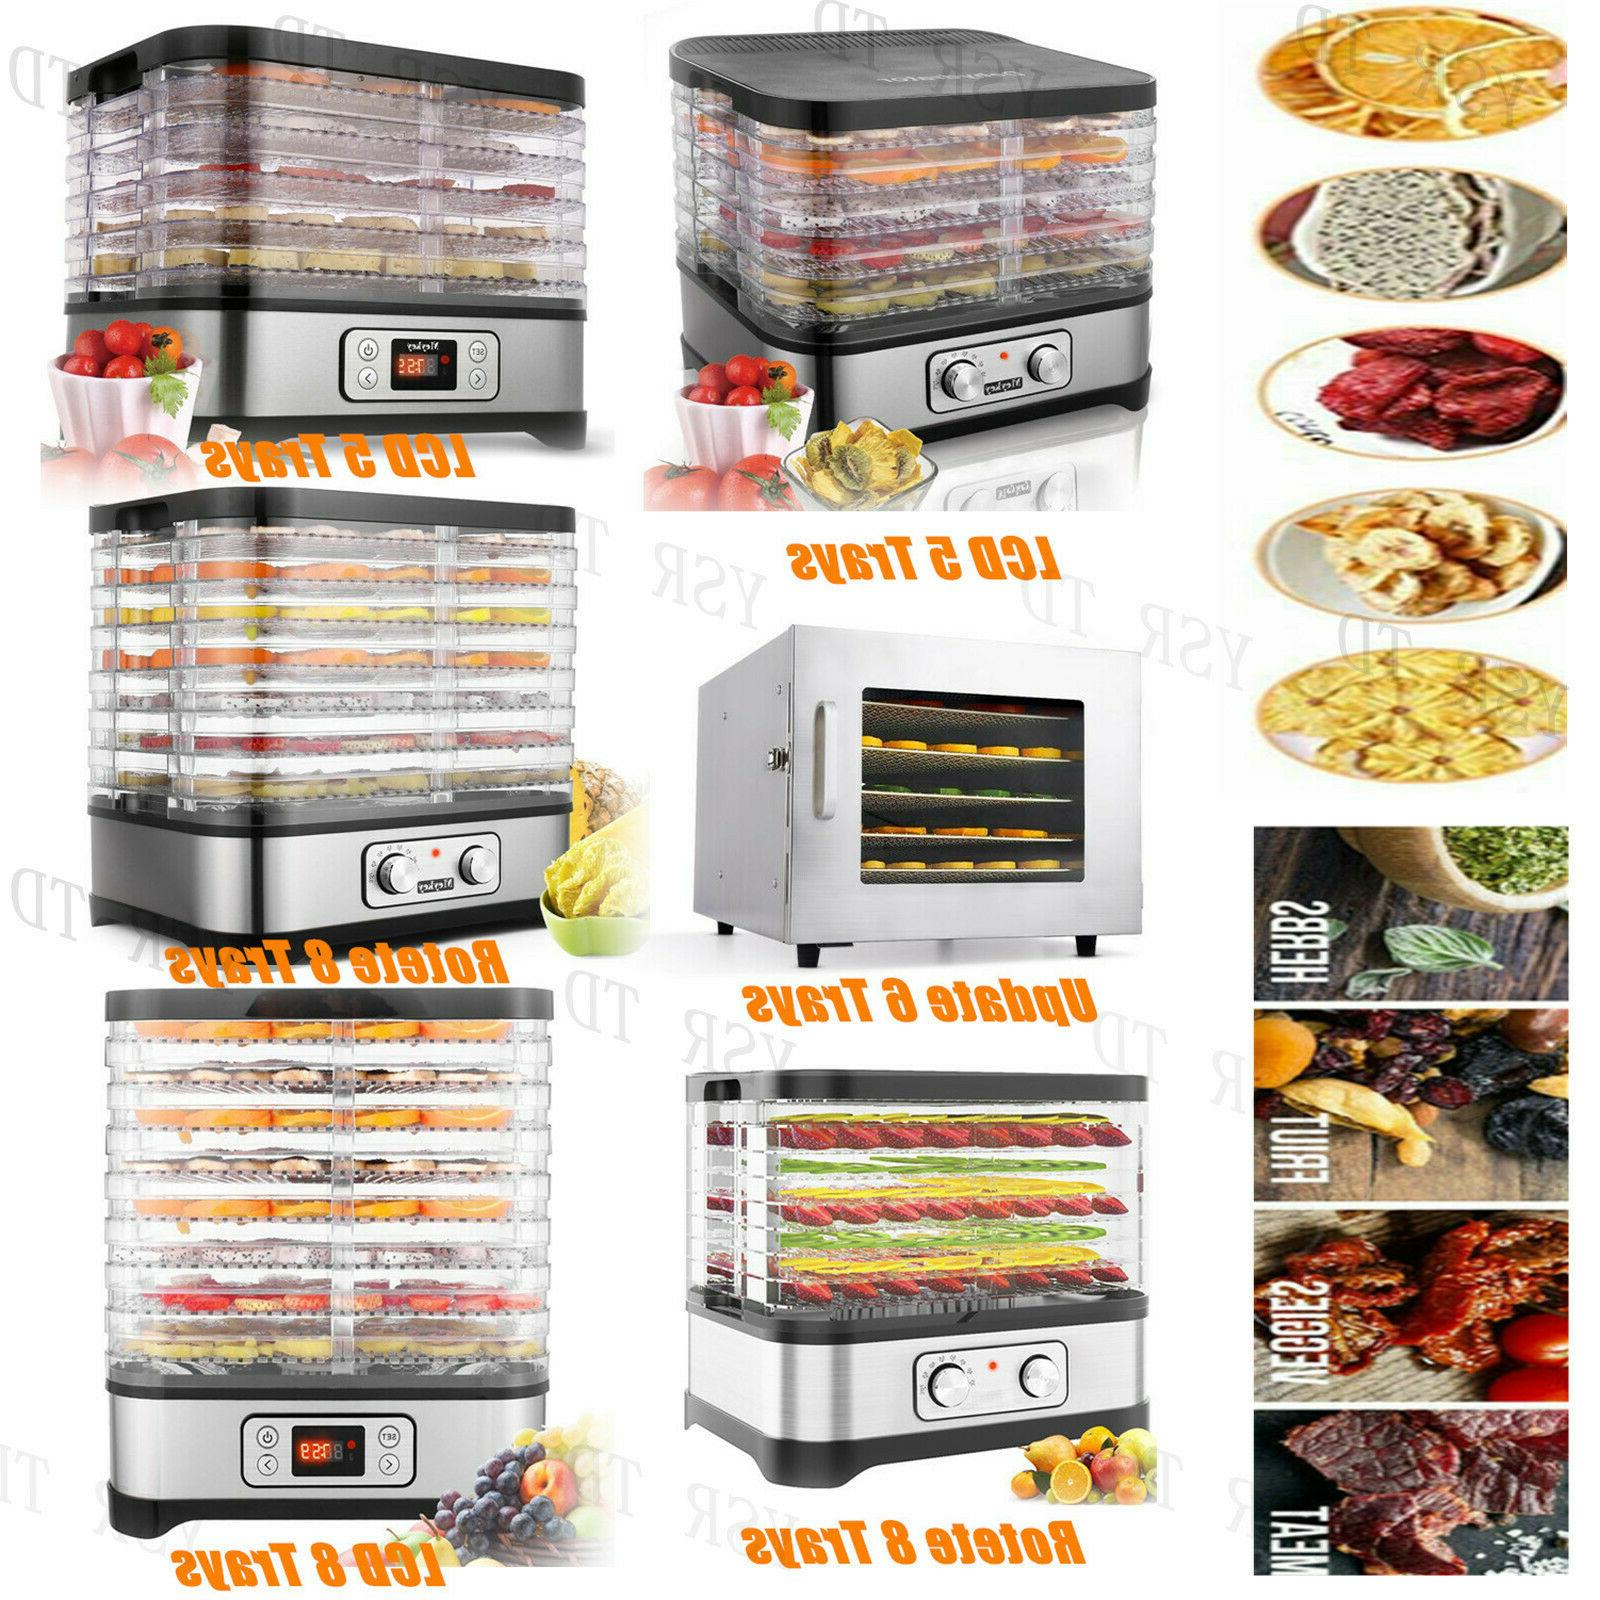 HOMDOX Food Dehydrator Tier Fruit